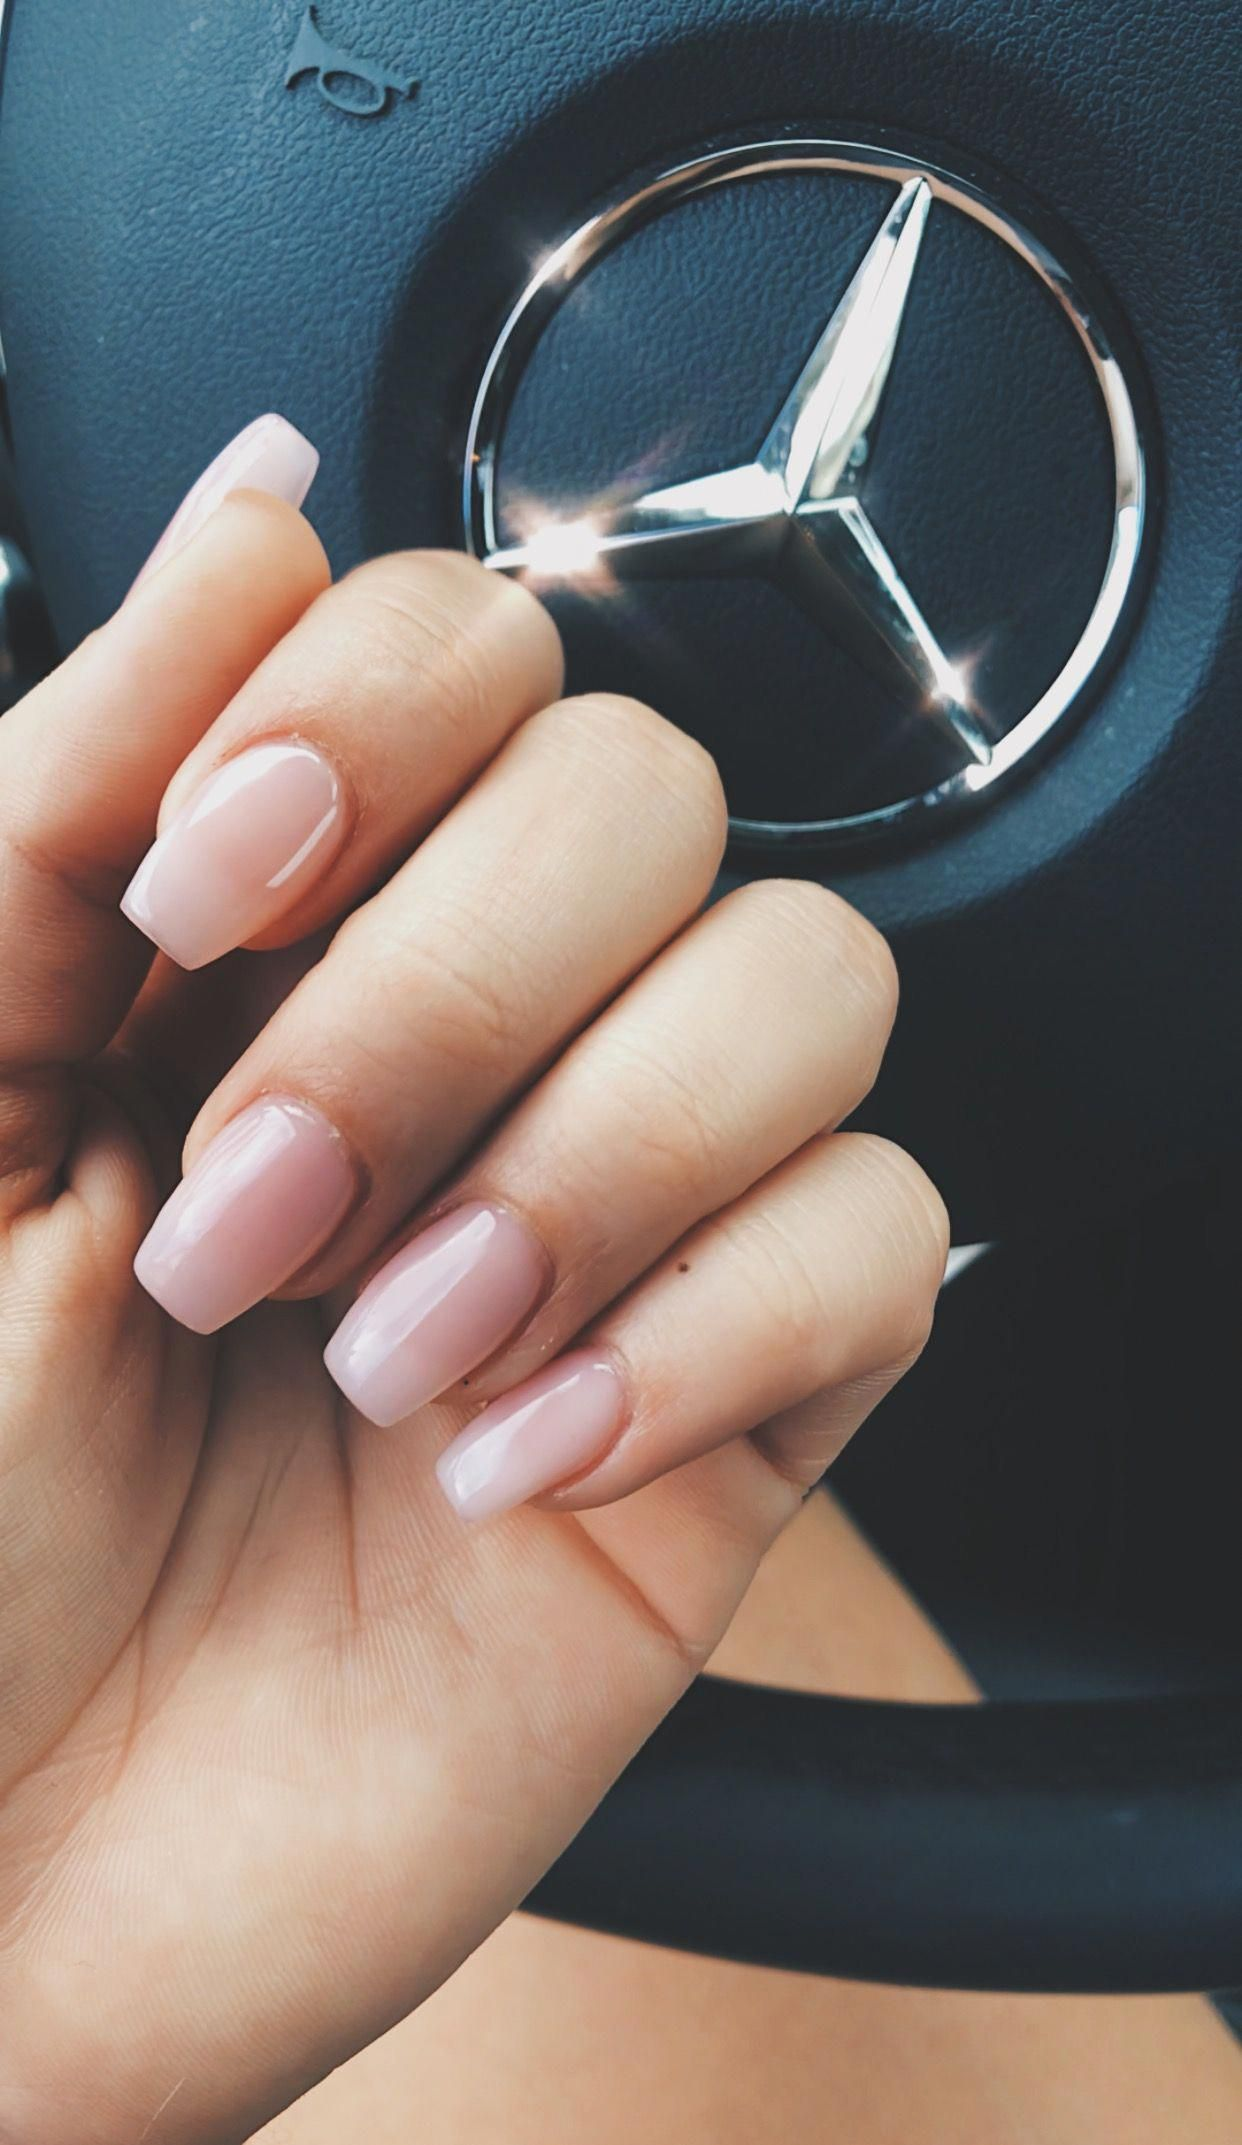 Opi Put It In Neutral Ig Lisettelaine Acrylicnails Cute Nails Neutral Nails Fake Nails